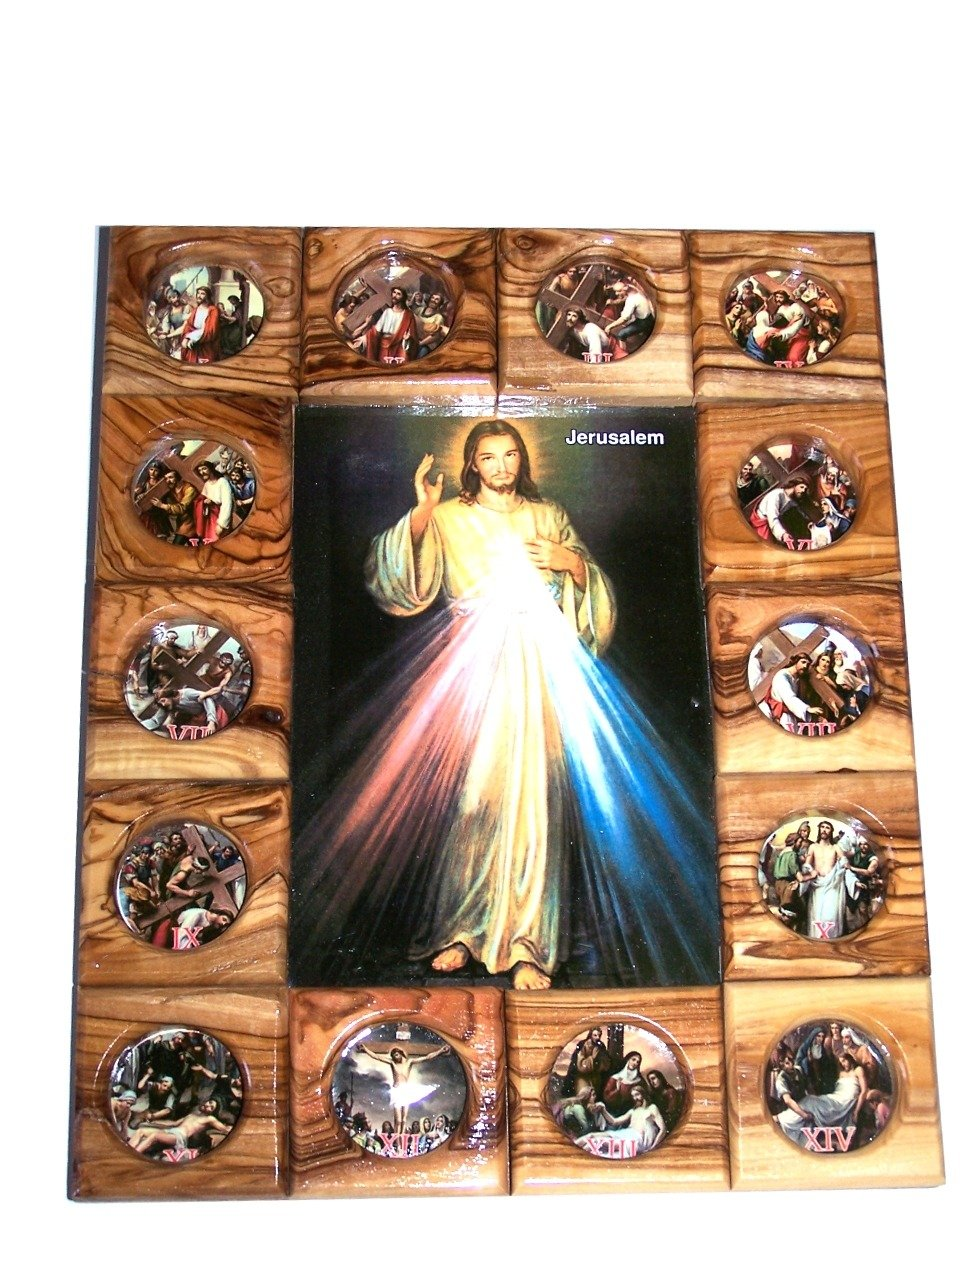 Holy Land Market Divine Mercy with Stations of The Cross Icon Plaque All in Olive Wood from Bethlehem 29 x 24 cm or 11.5 x 9.5 inches